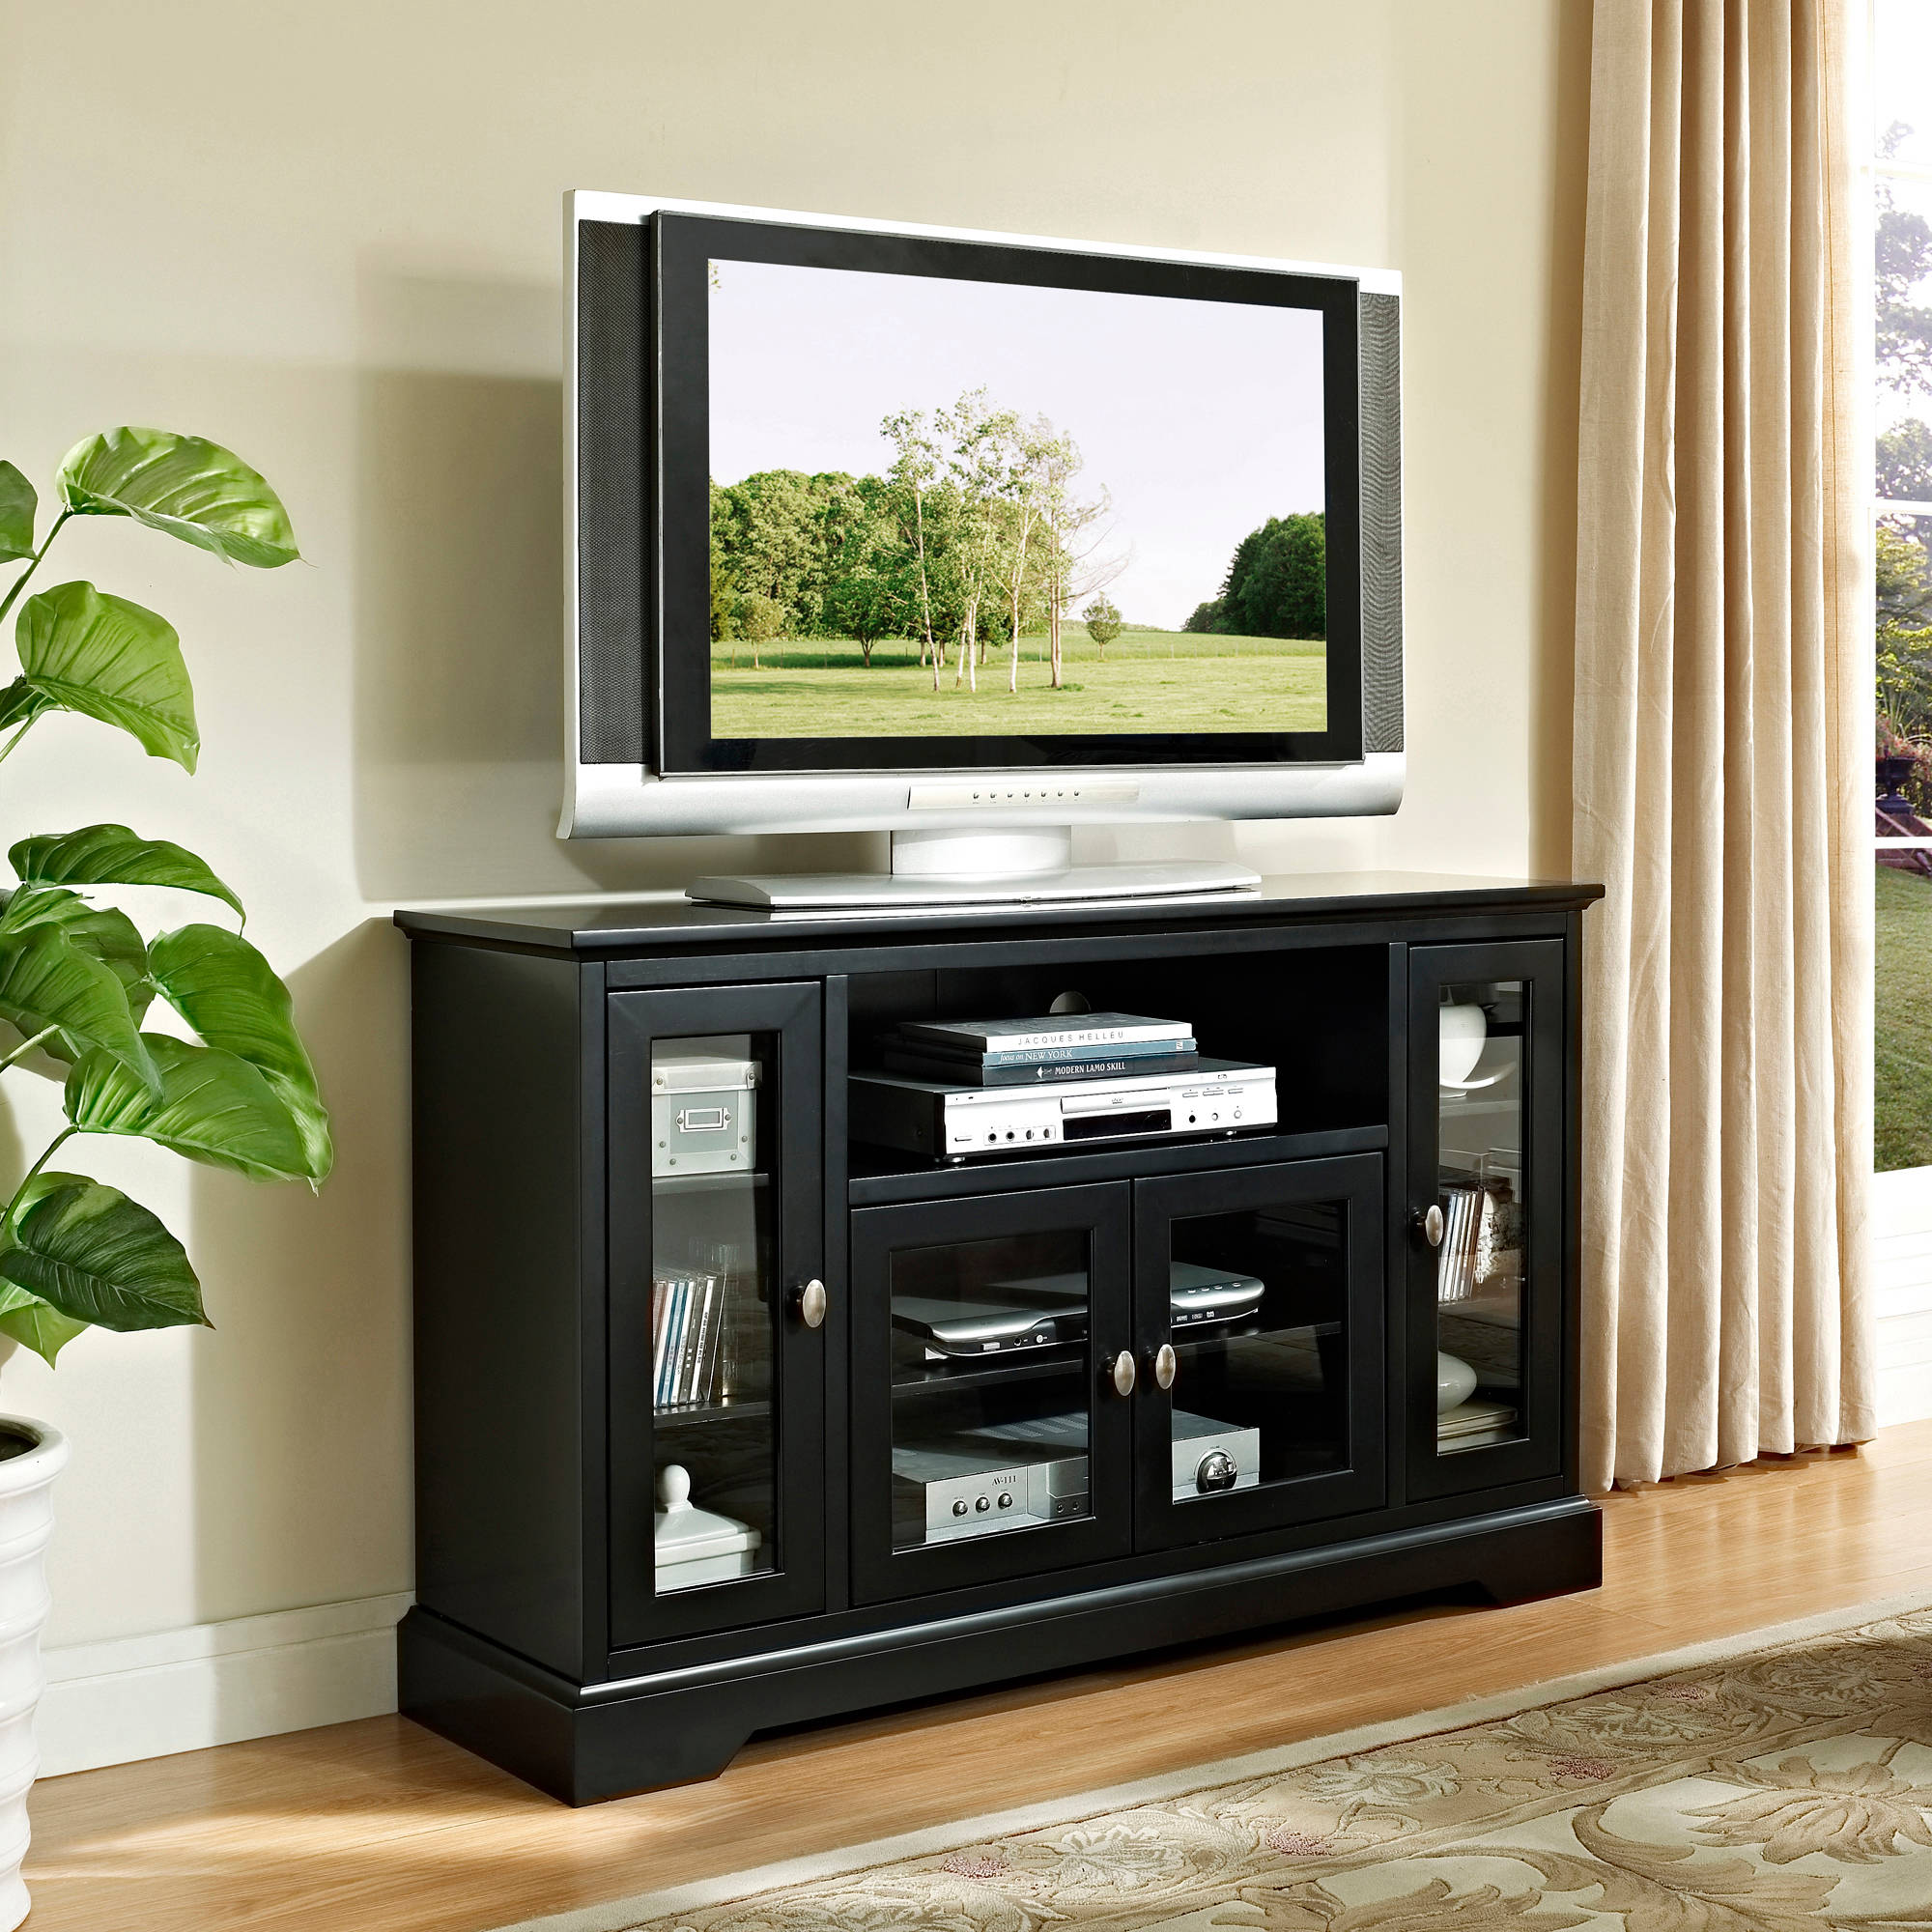 Wood console table tv stand for tvs up to 55 multiple finishes walmart com